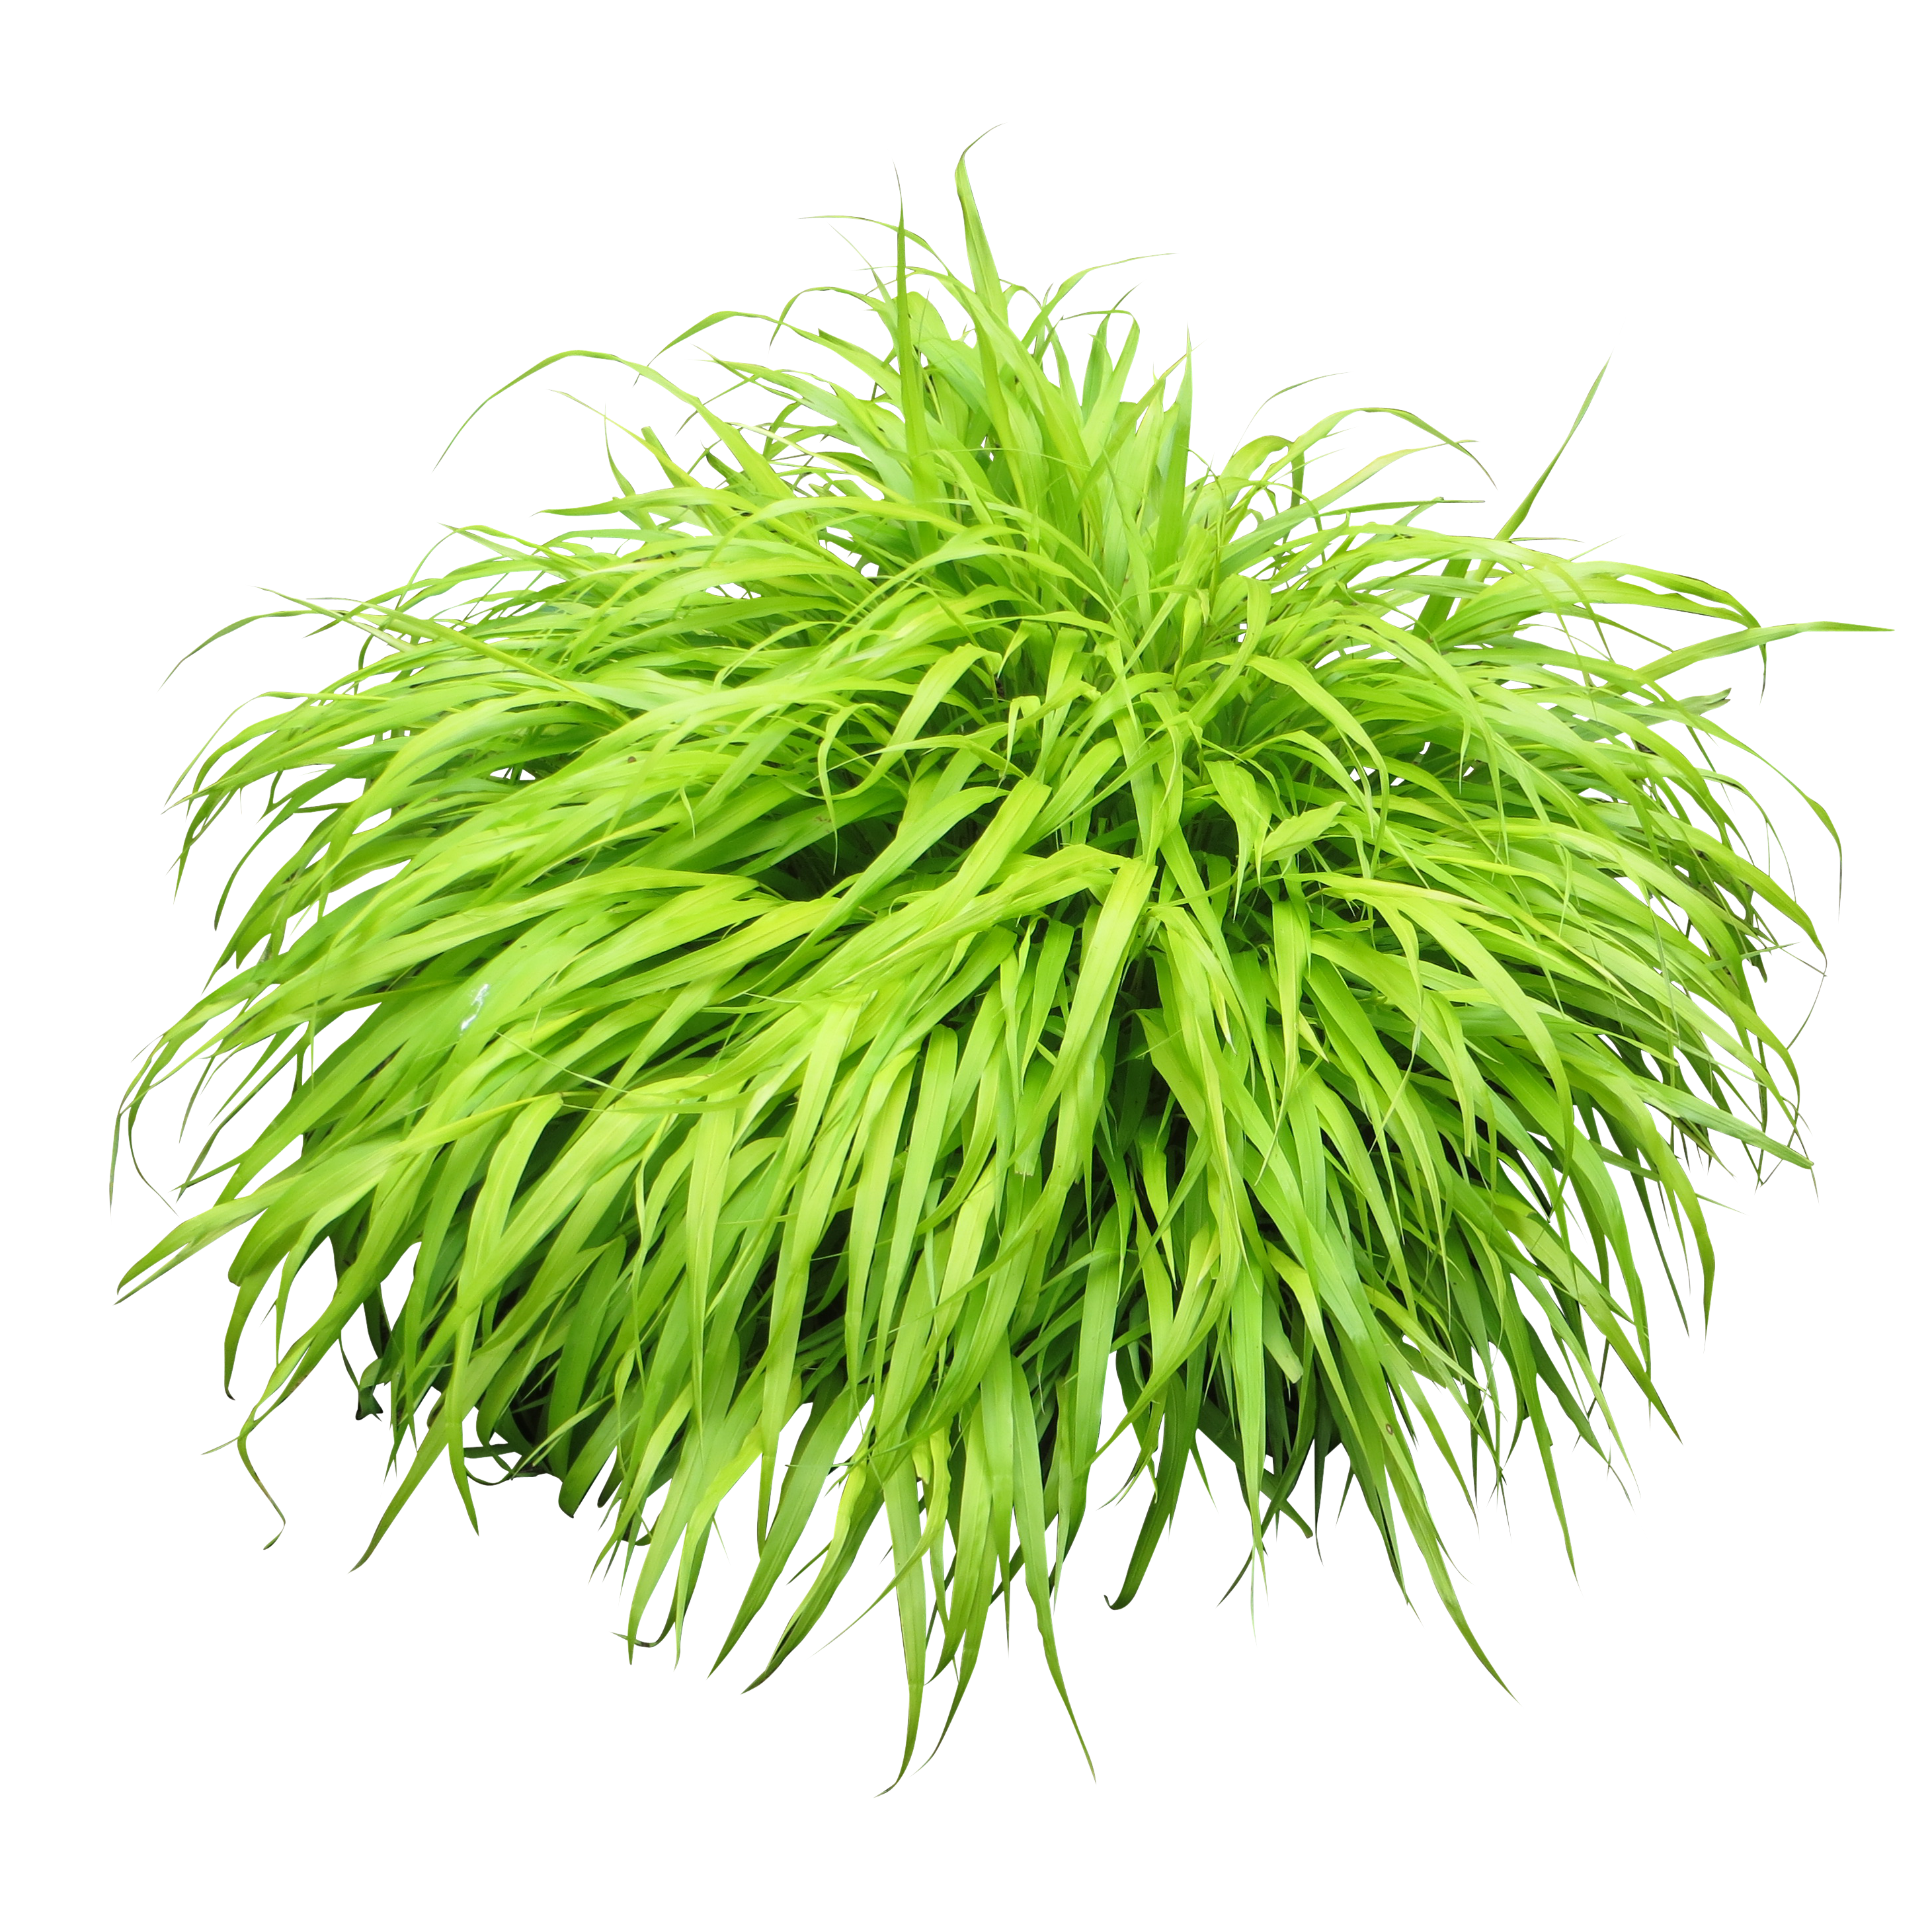 plant png plants png transparent images png only #9483